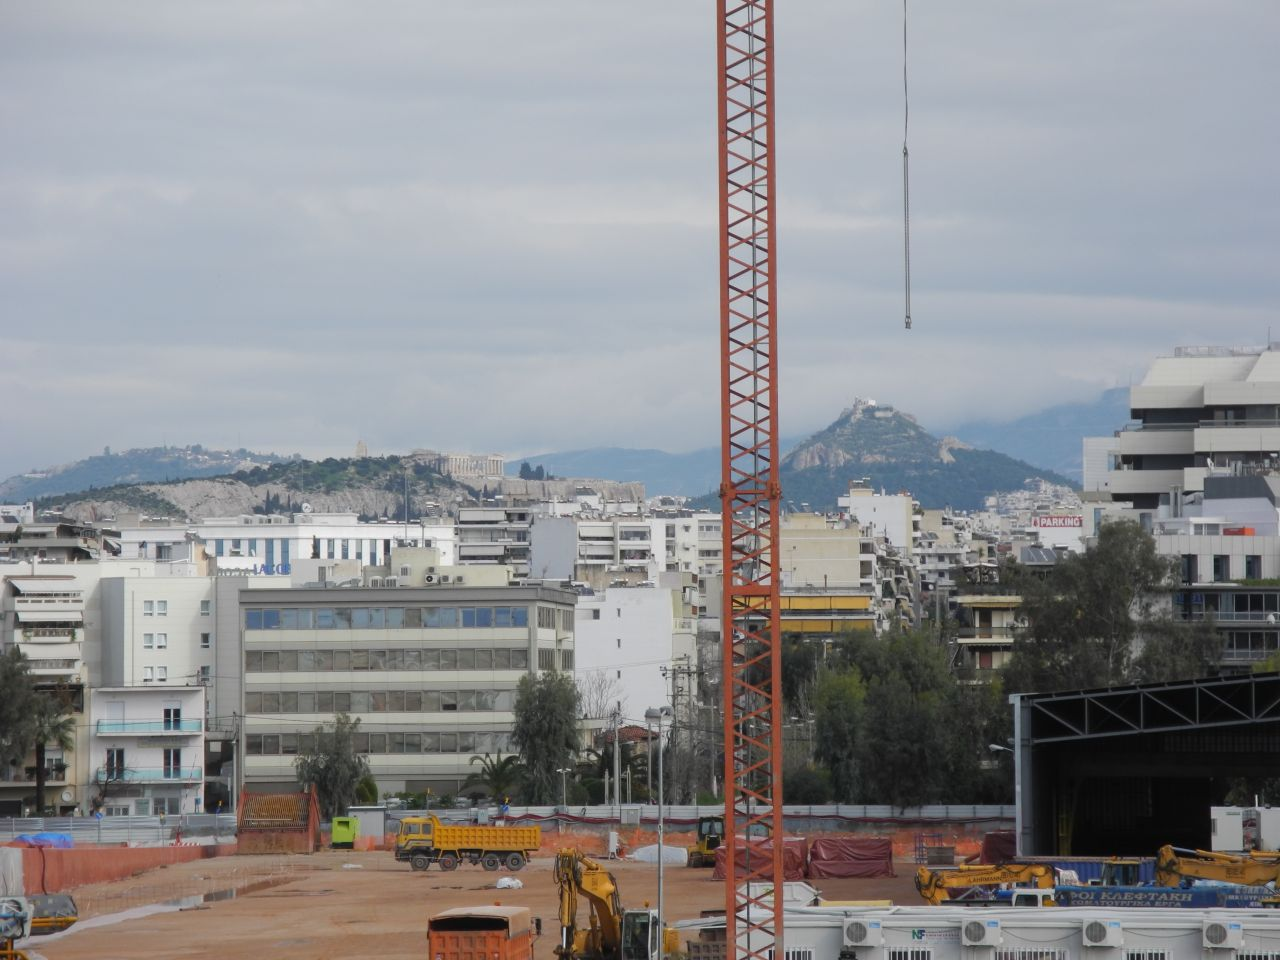 The Acropolis and Lycabettus hill as seen from the construction site.